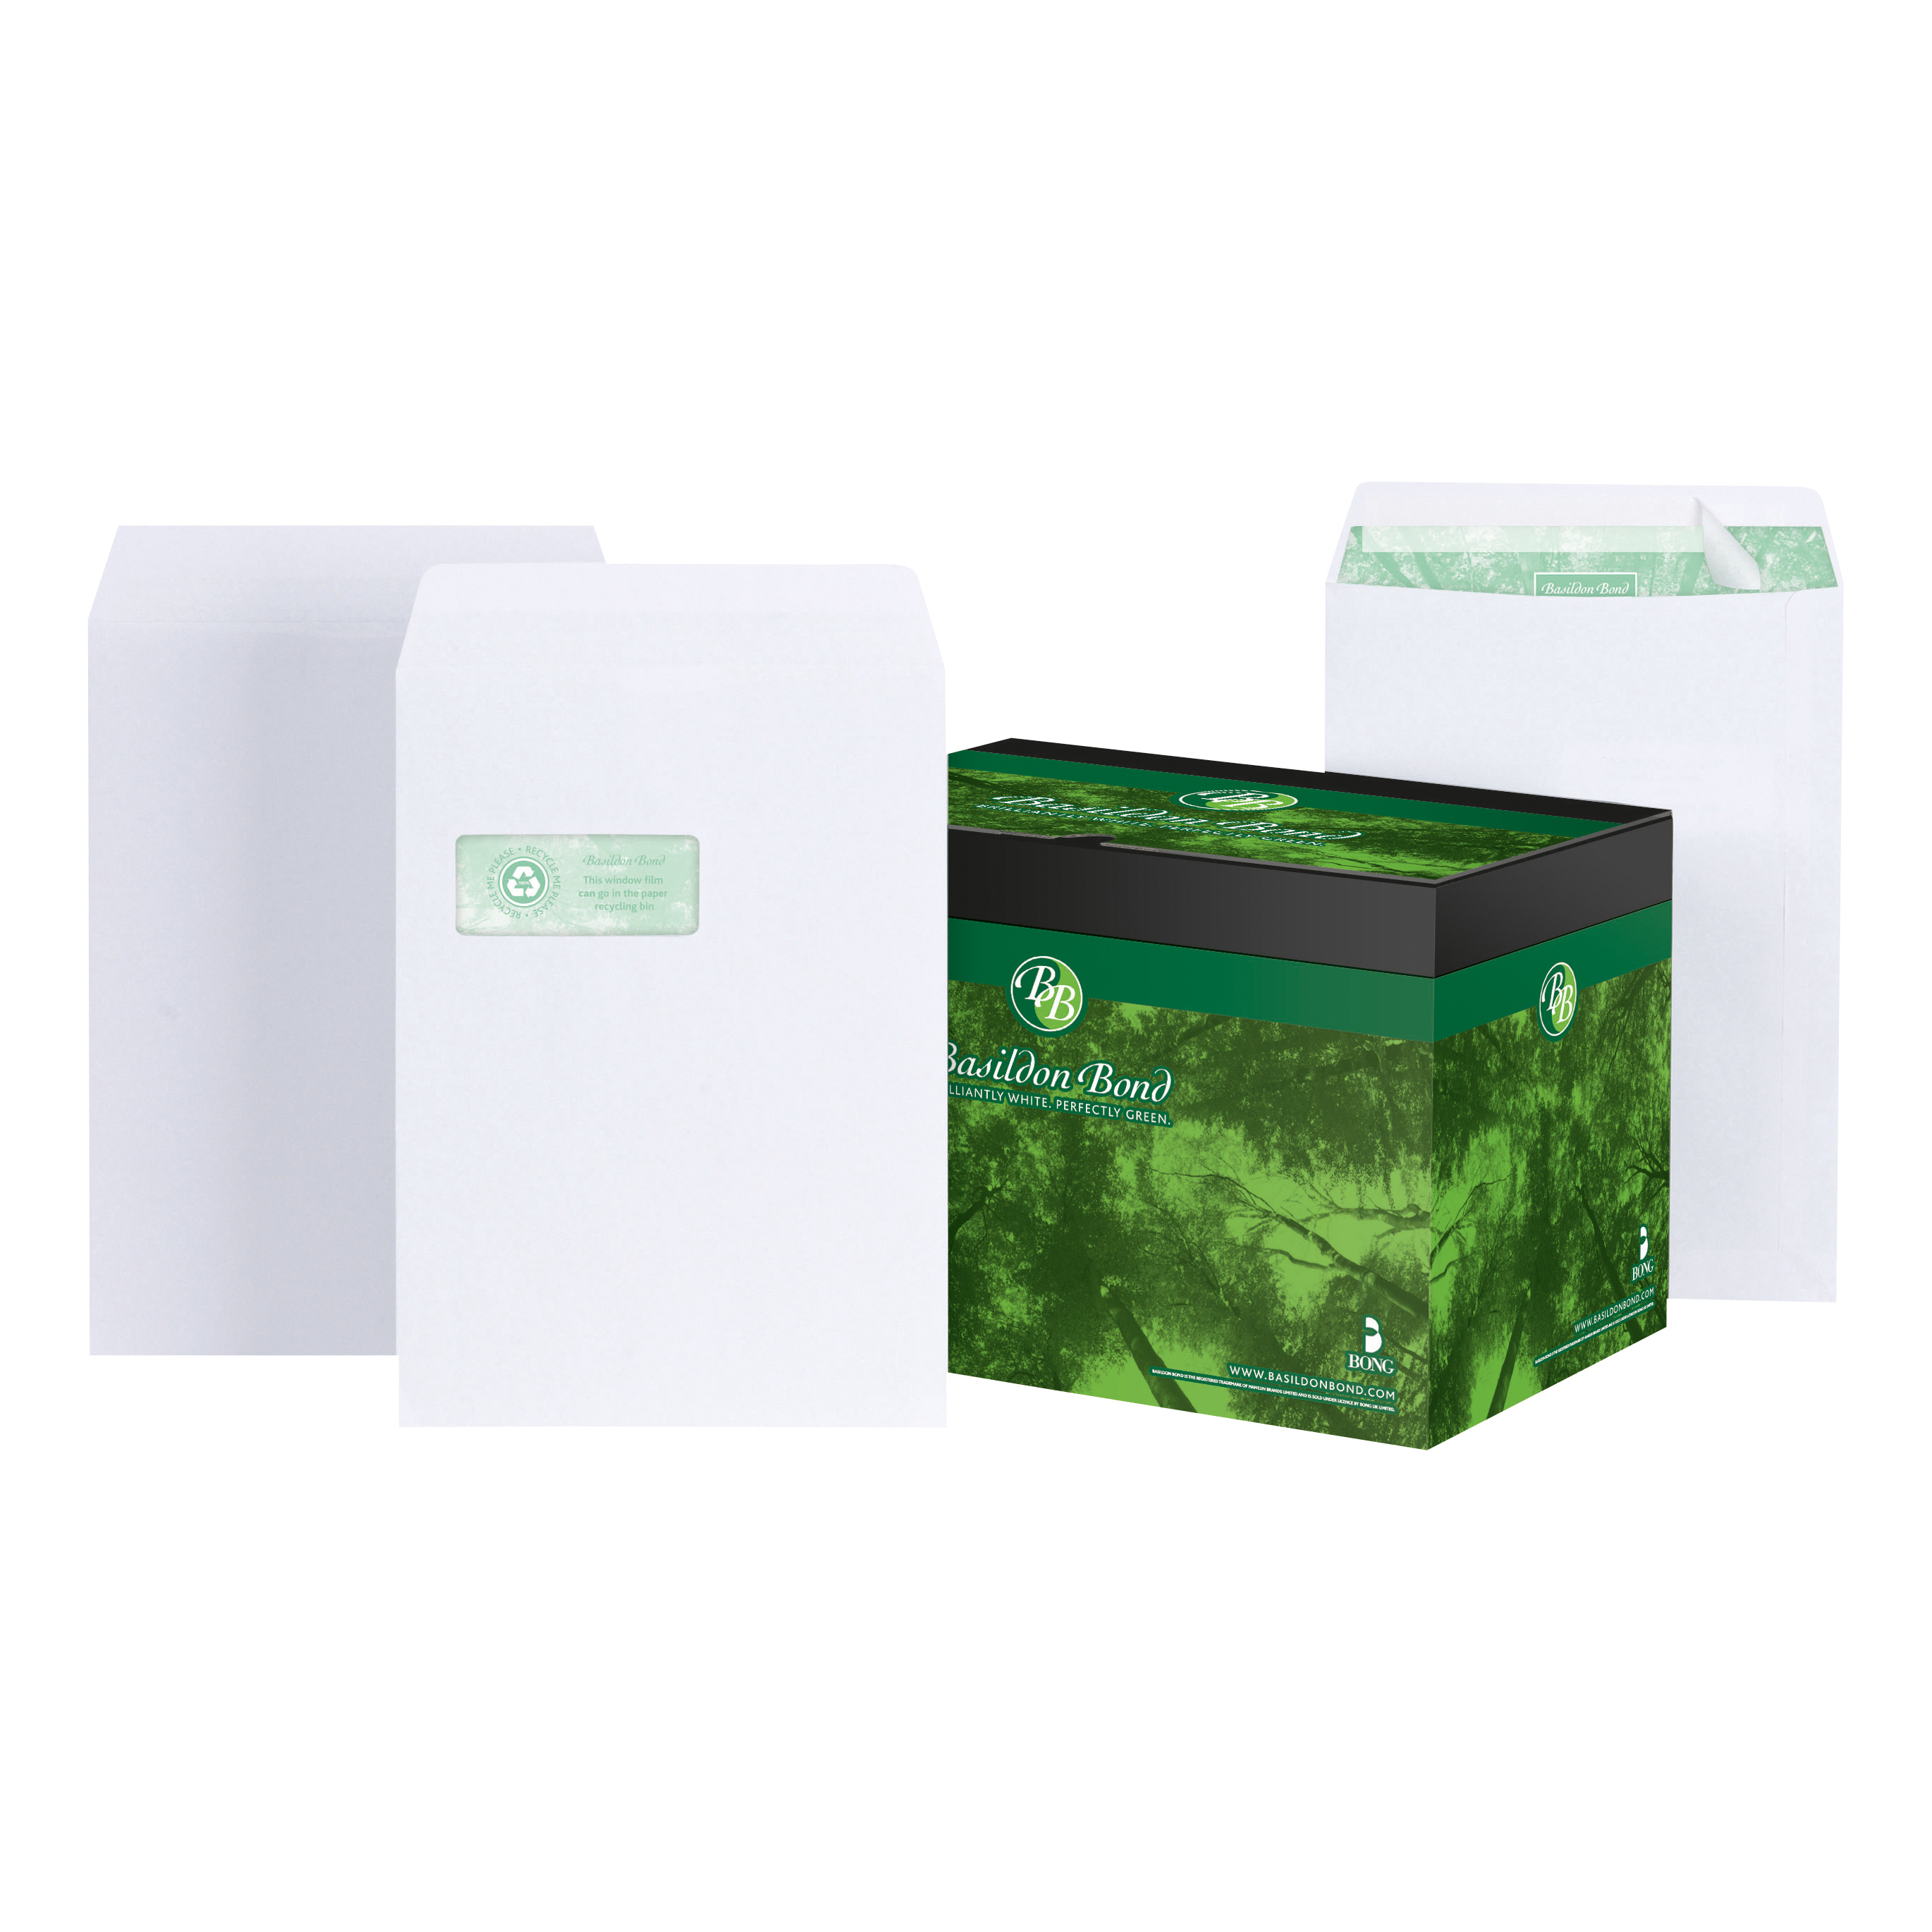 Basildon Bond Envelopes C4 Pocket Peel and Seal Recycled 120gsm White Ref M80120 Pack 250 PRIZE DRAW